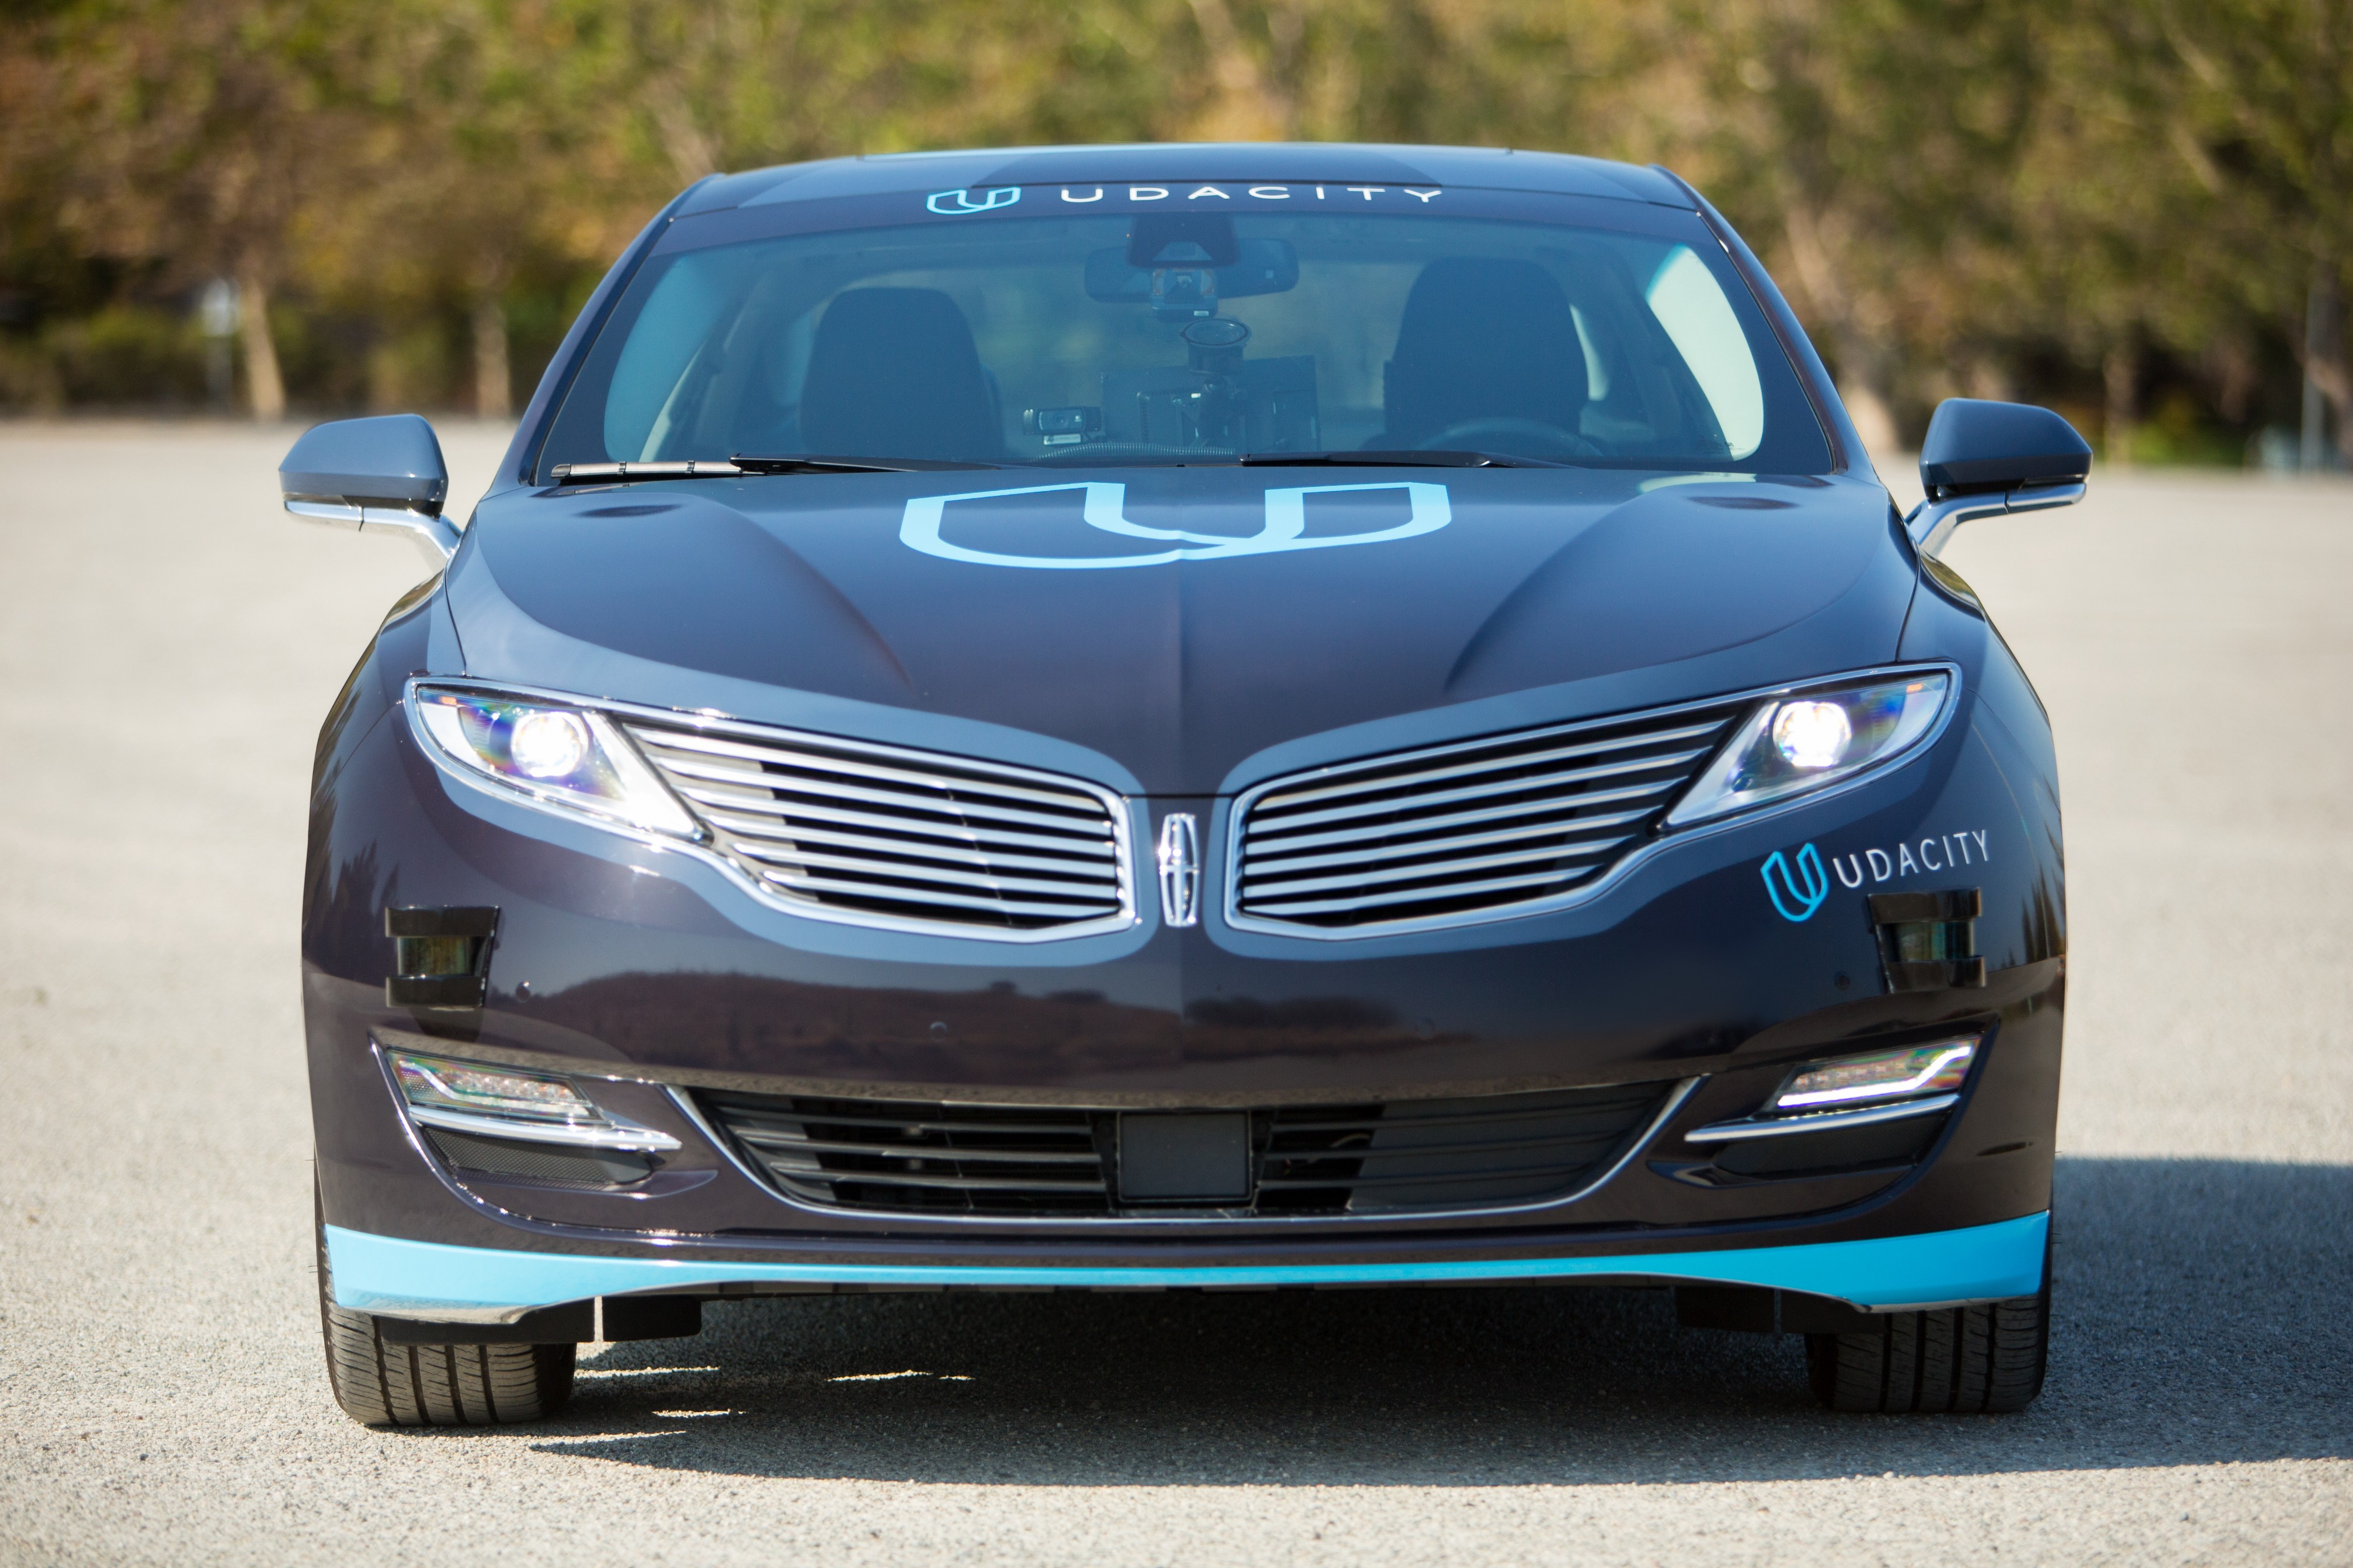 We're Building an Open Source Self-Driving Car - Udacity Inc